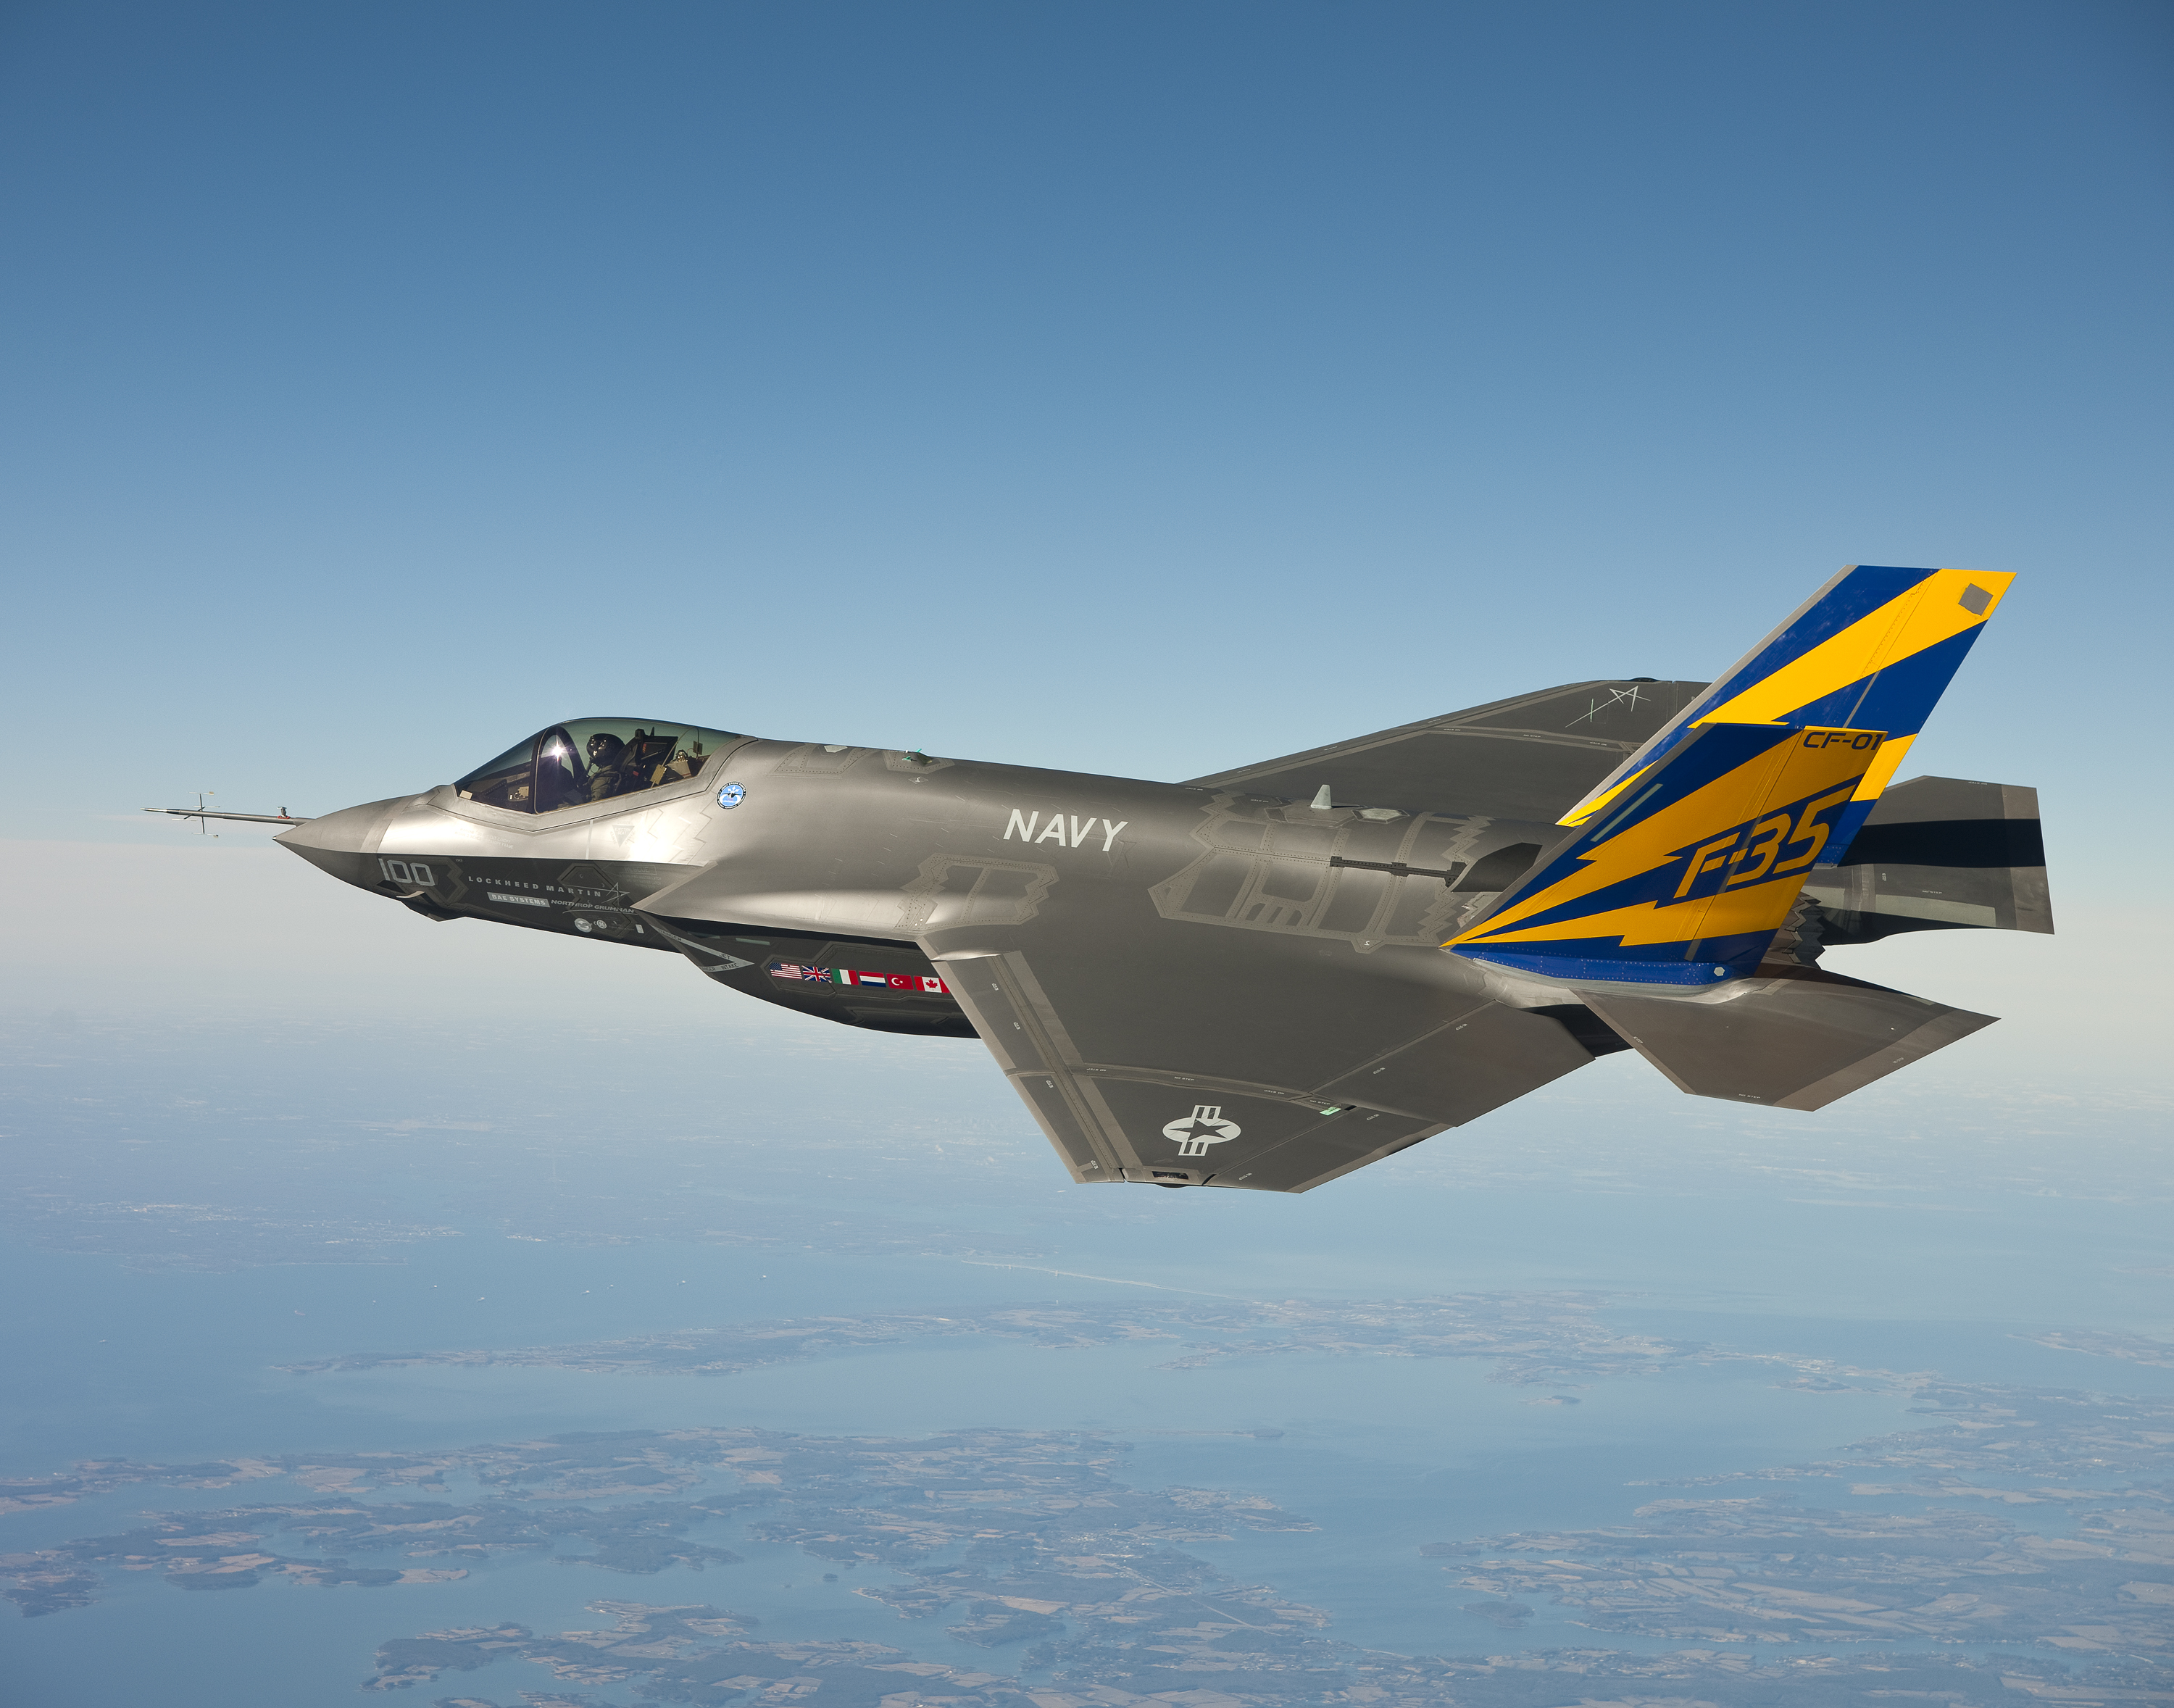 The U.S. Navy variant of the F-35 Joint Strike Fighter, the F-35C, conducts a test flight over the Chesapeake Bay. (U.S. Navy photo courtesy Lockheed Martin/Released)